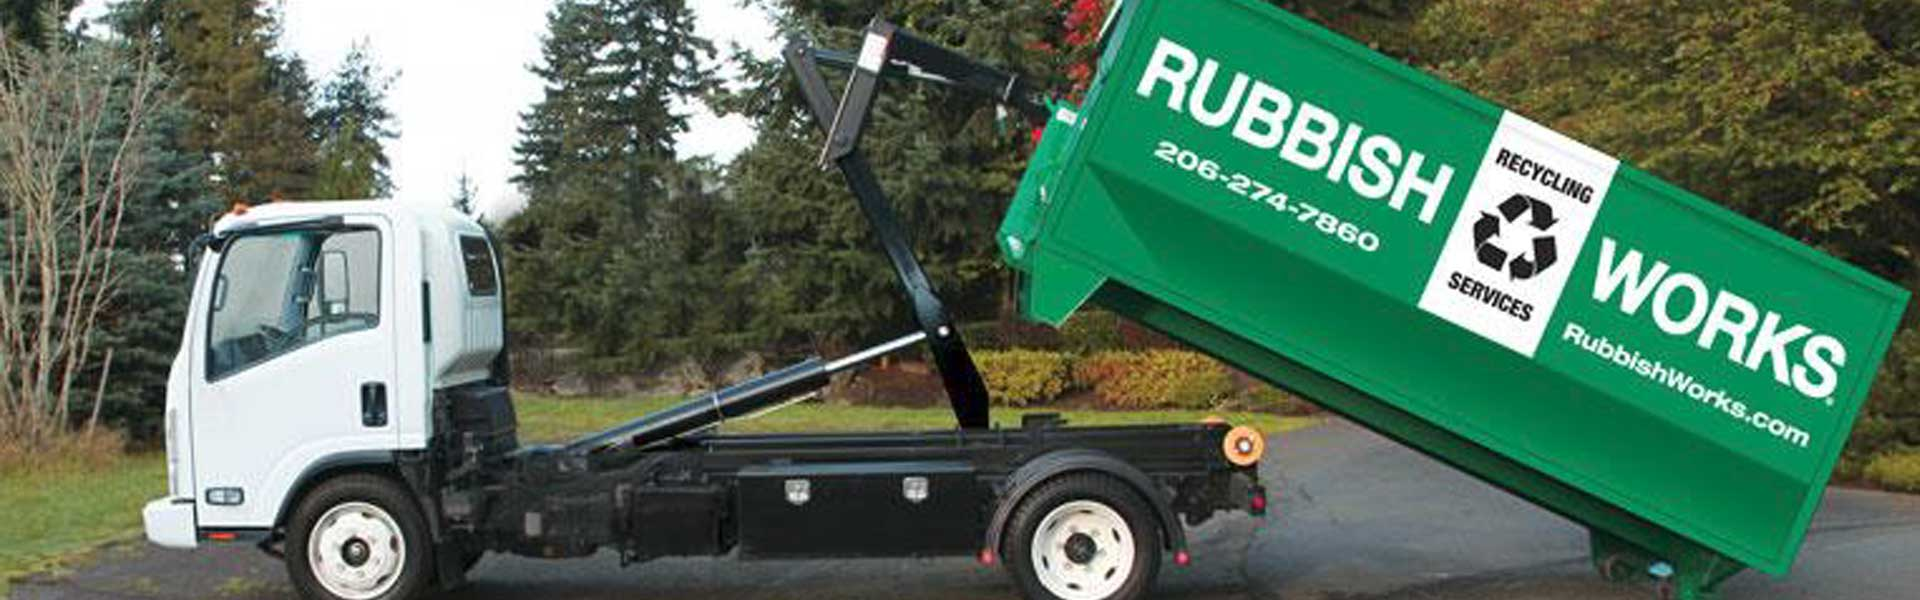 dumpster rental services